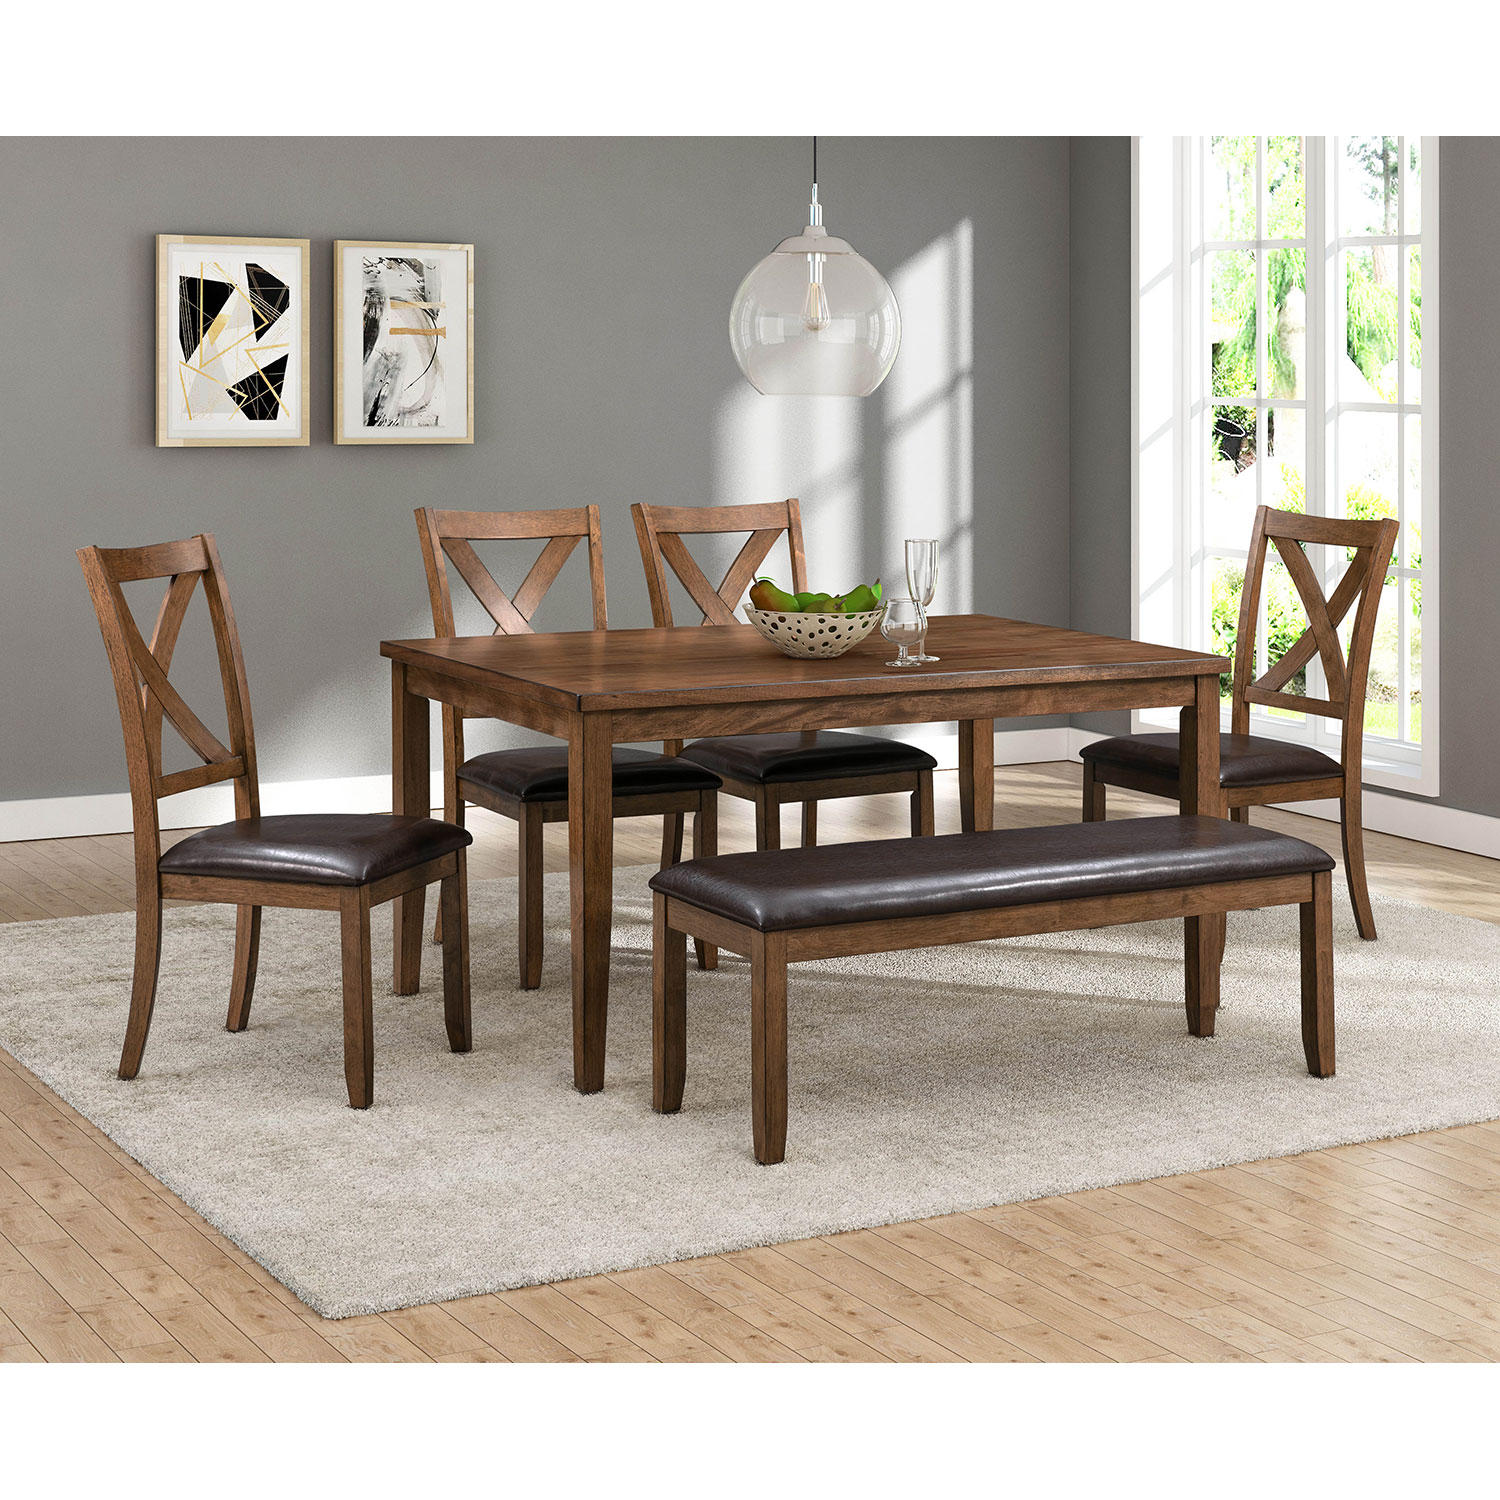 6-Piece Abbyson Living Reese Wood Dining Set with Bench